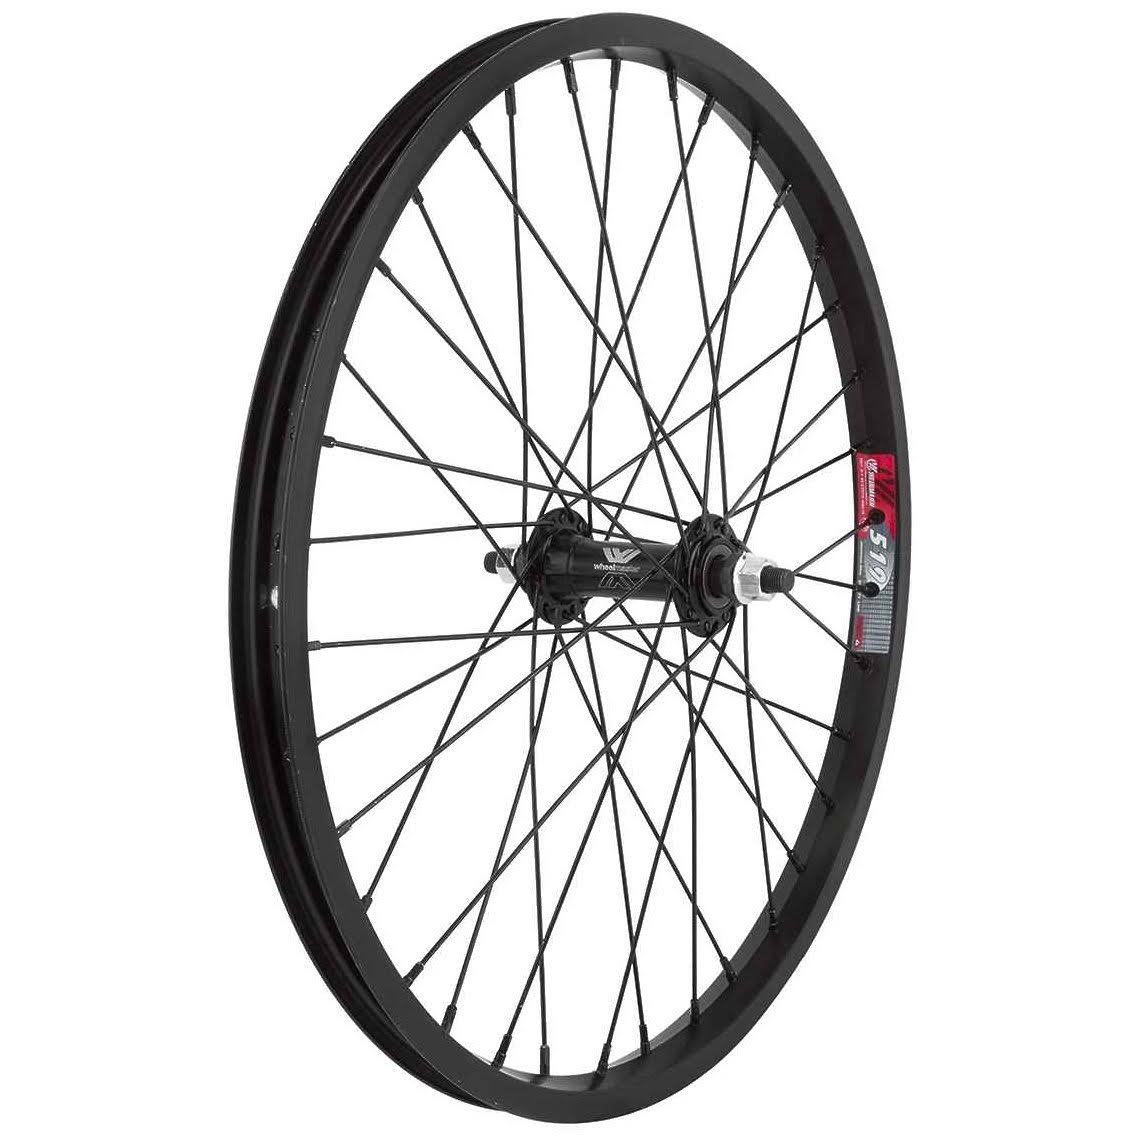 Wheel Master Front Bicycle Wheel - 20 x 1.75, 36H, Alloy, Bolt On, Black